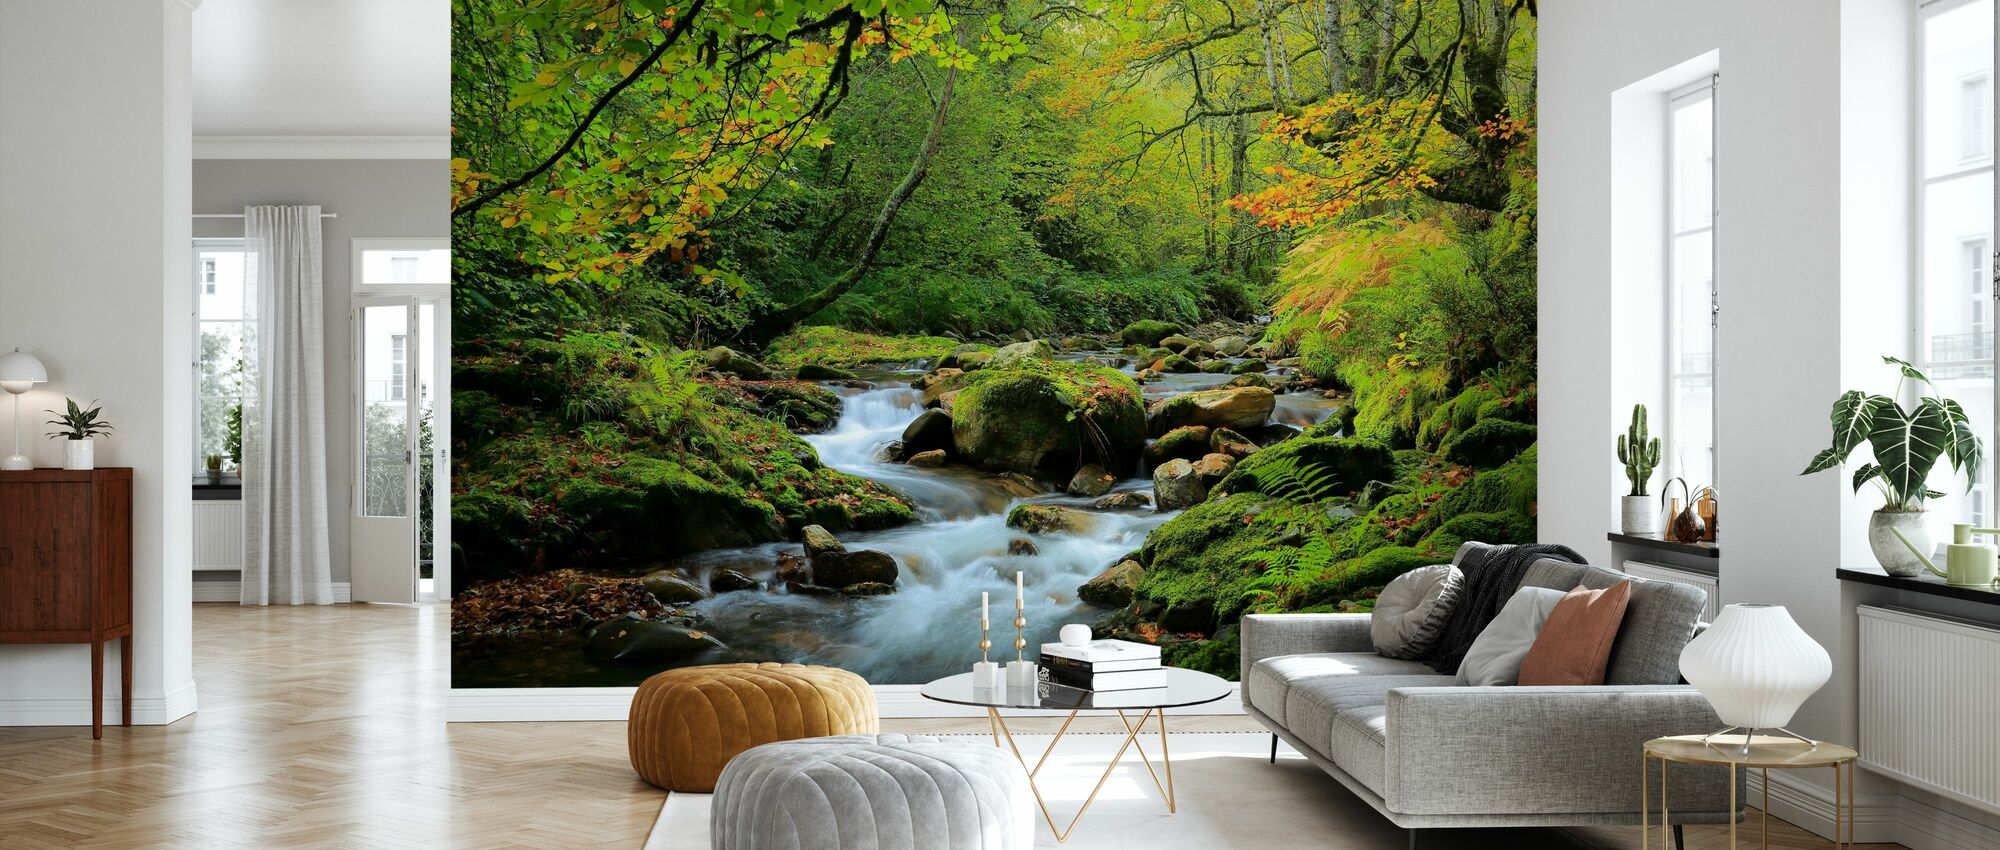 River and Beech Woodland - Wallpaper - Living Room